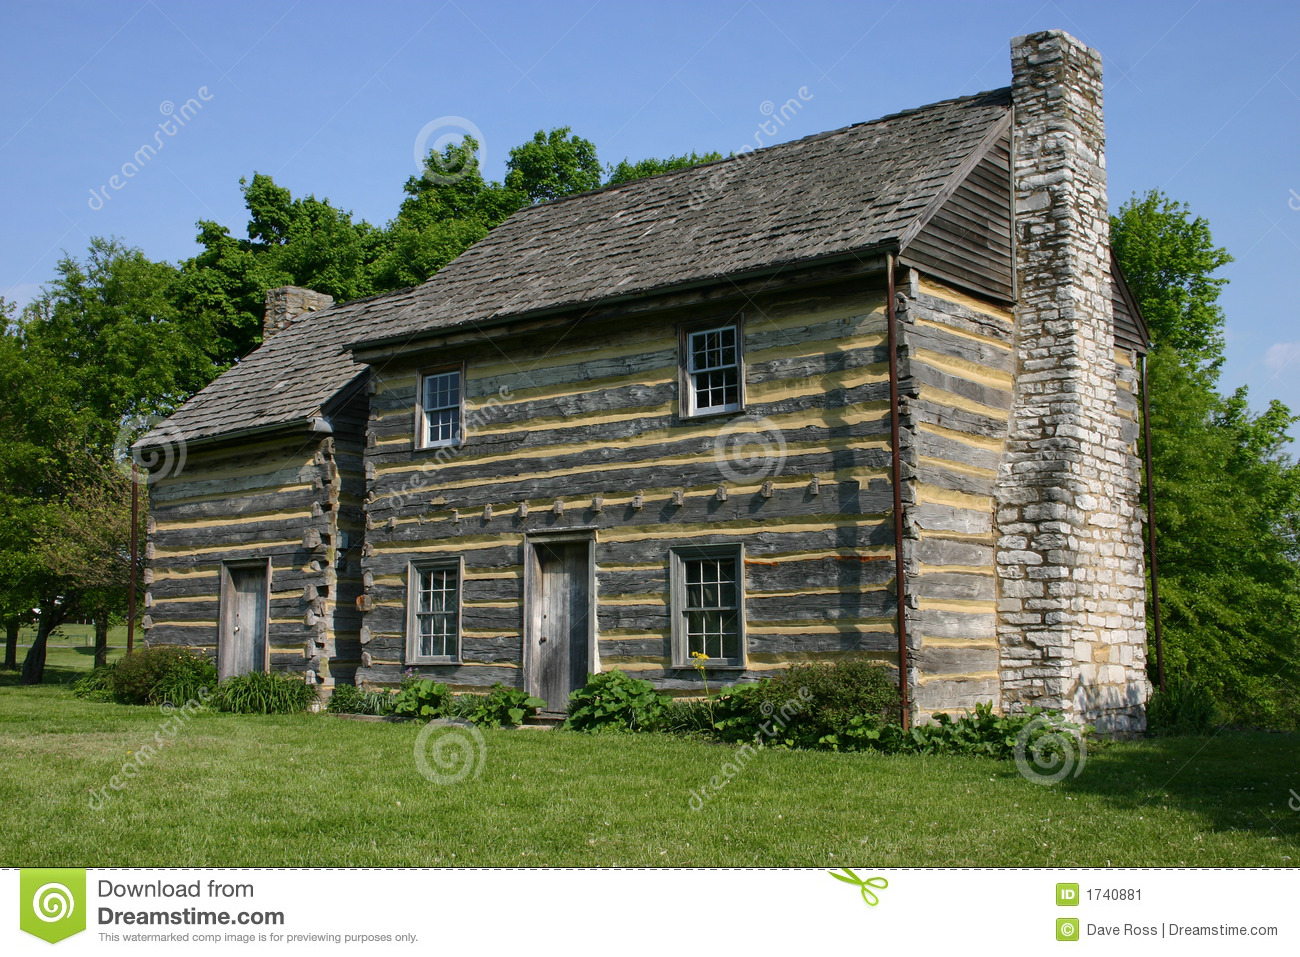 Log cabin stock image image 1740881 Log cabin for two